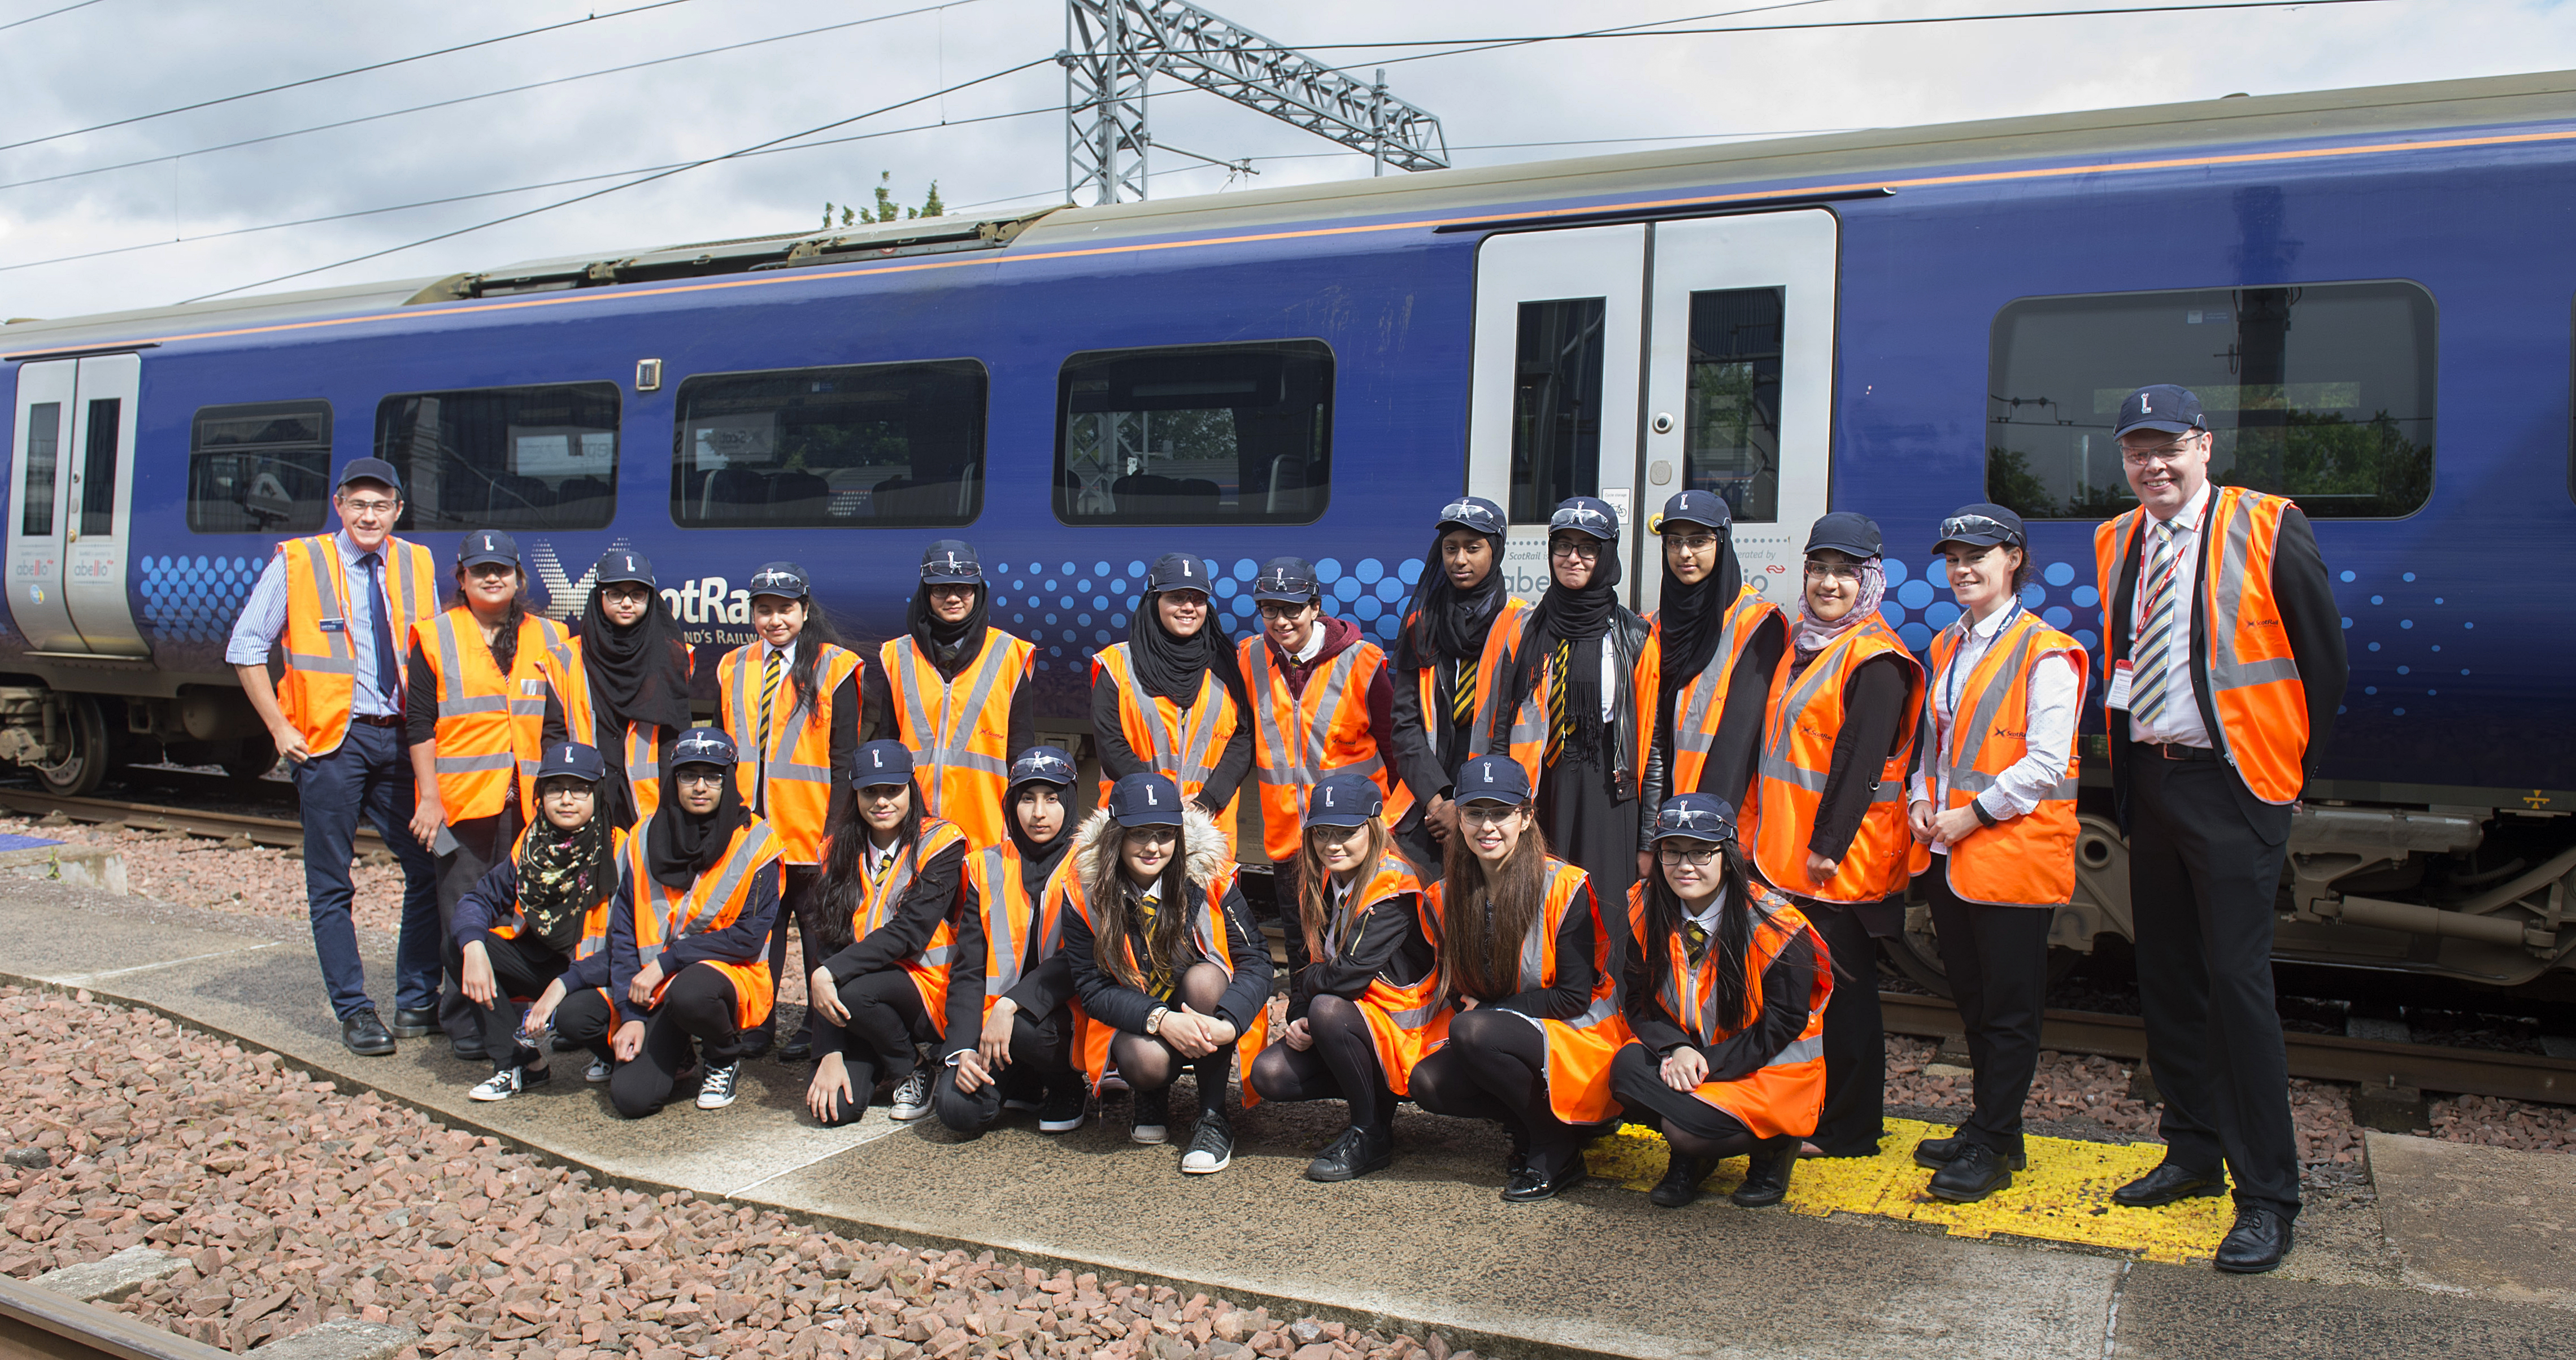 23/06/17 - 17062310 - SCOTRAIL  SHEILDS DEPOT - GLASGOW  Schoolgirls Visit for 'Women into Engineering' Day Pictured is Fleet Manager Gareth Rollings (L) and Engineering Director Angus Thom (R)